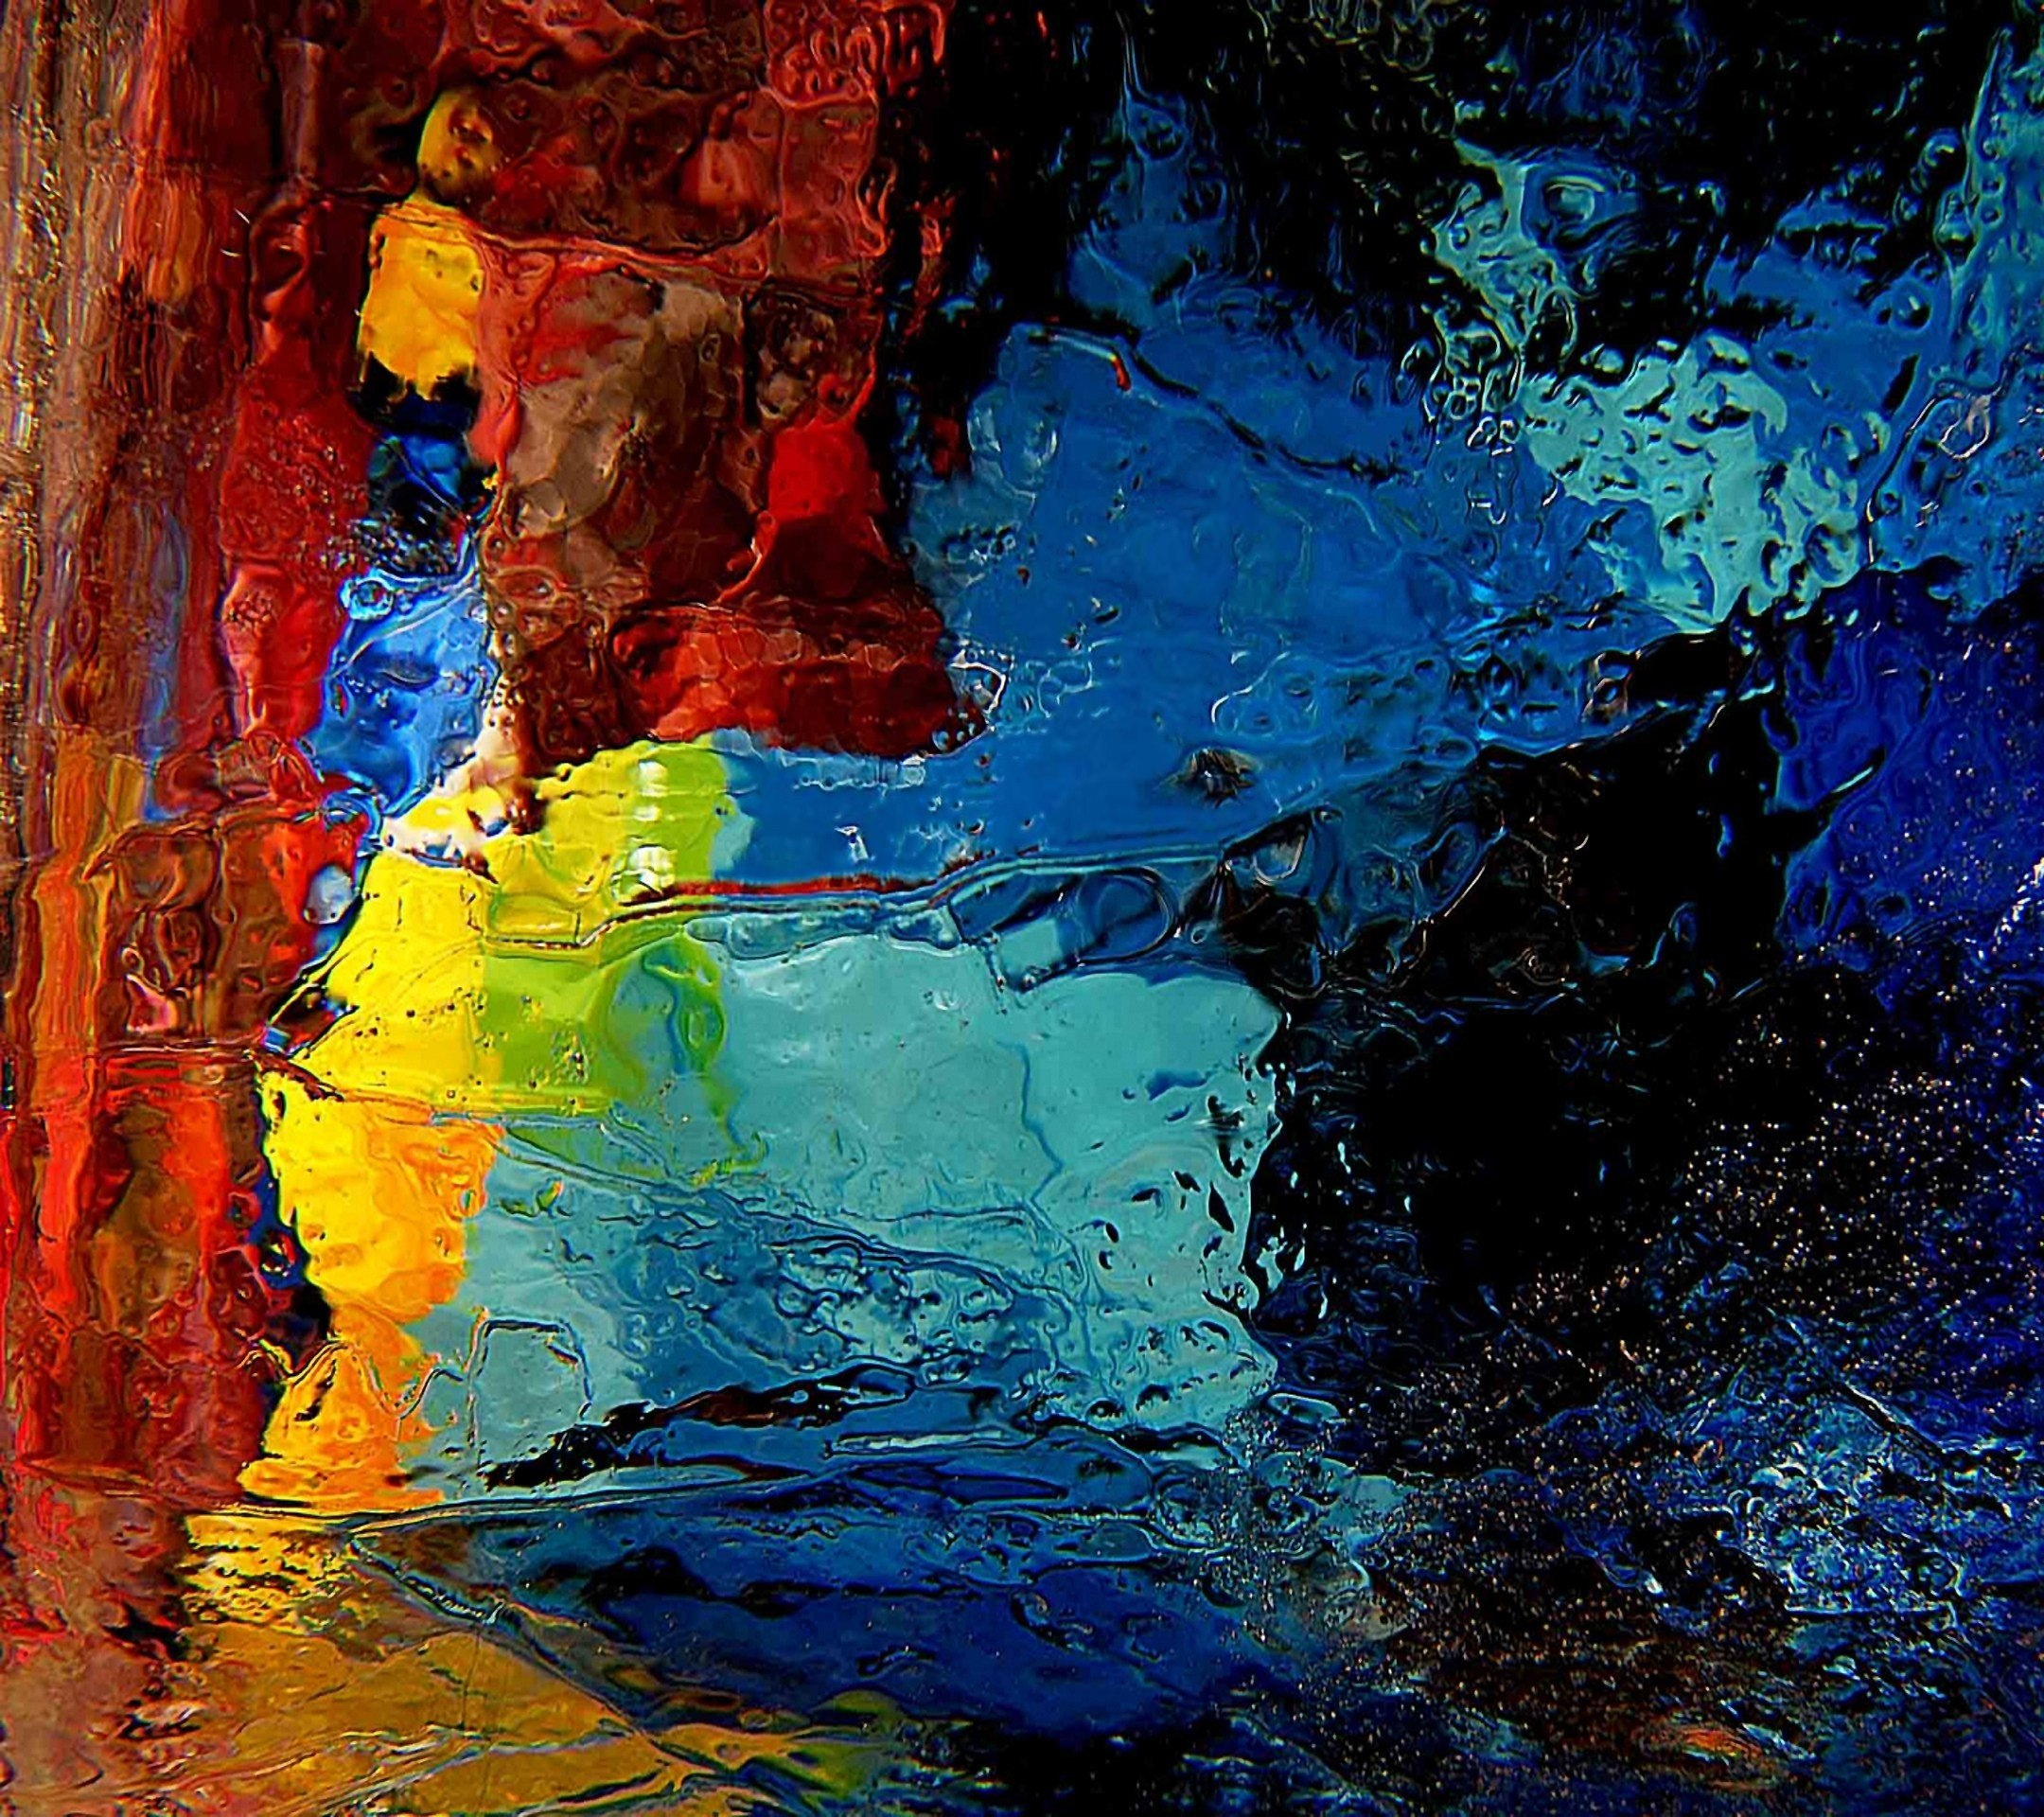 Water Painting Colors   Samsung Galaxy S5 HD Wallpapers Download 2160x1920